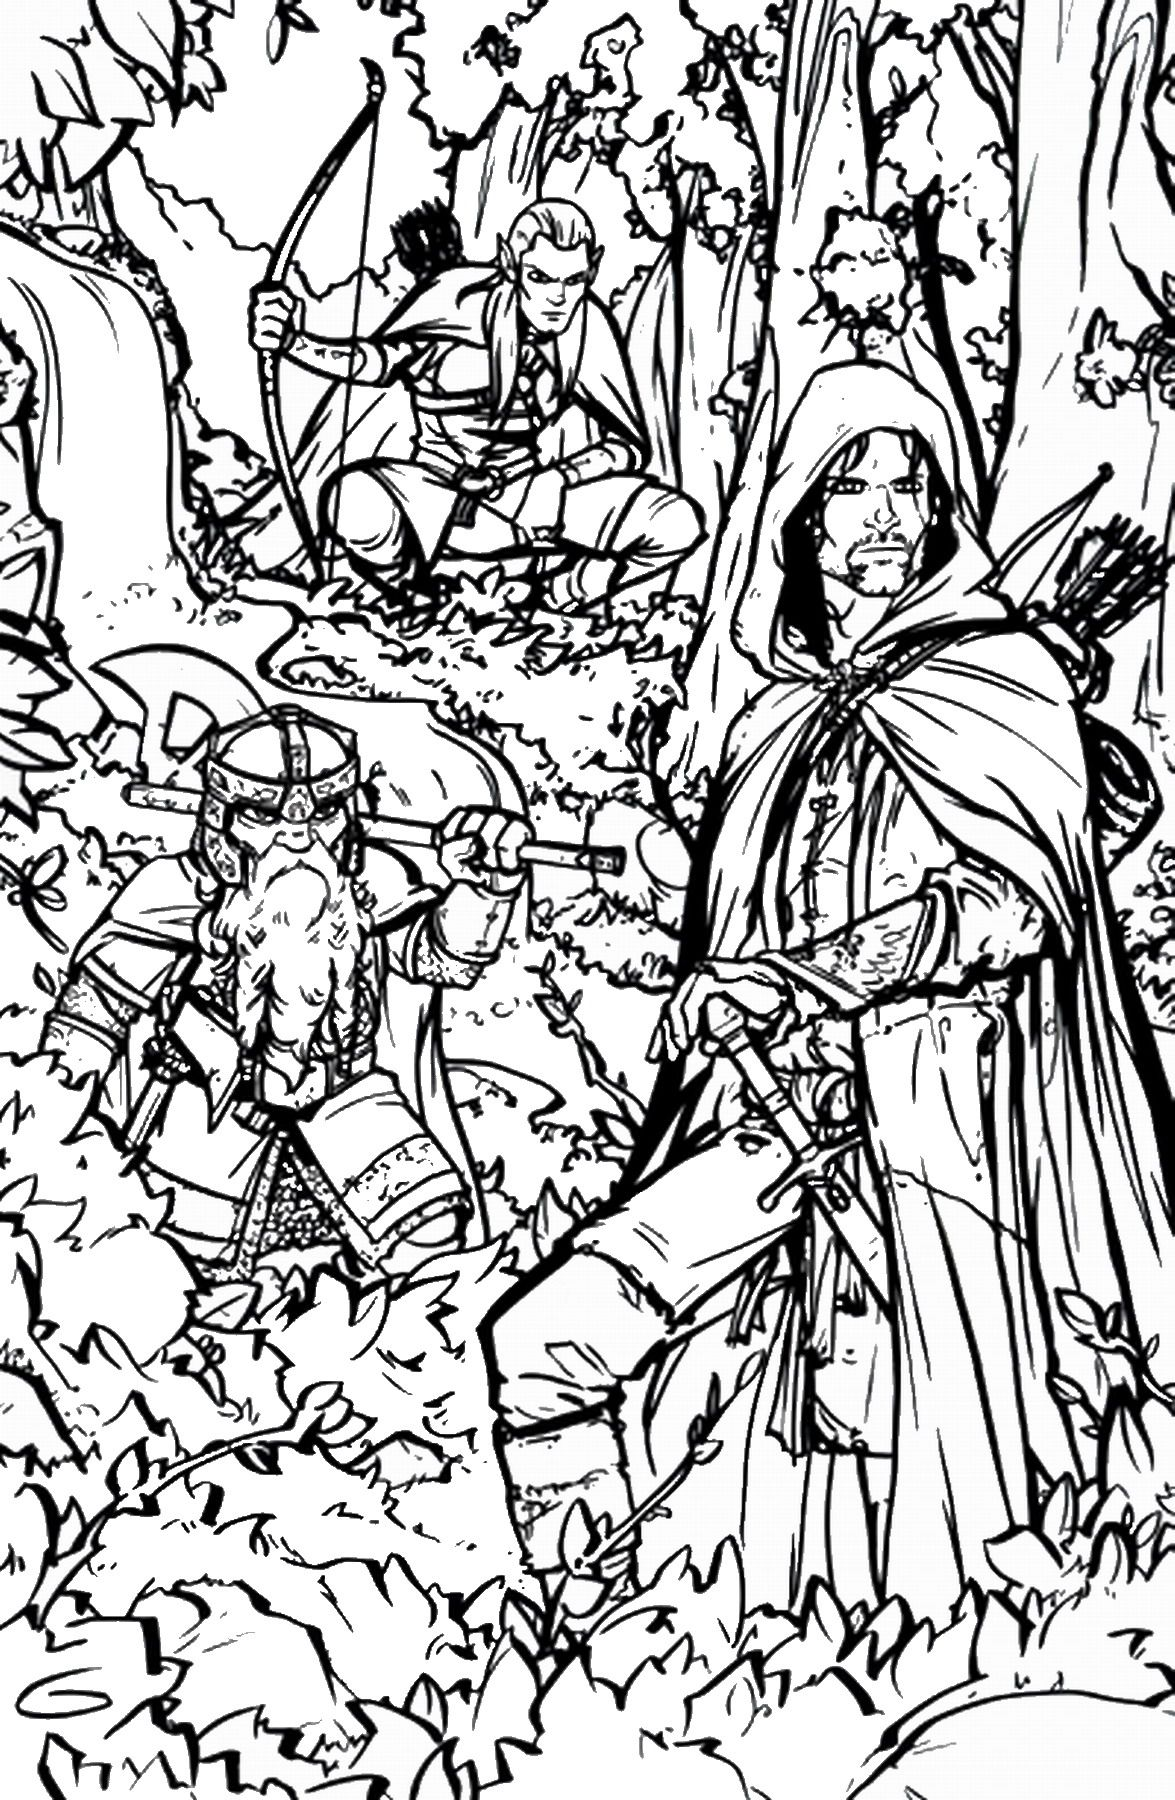 Lord of the Rings Coloring Pages | Coloring Craze | Pinterest ...